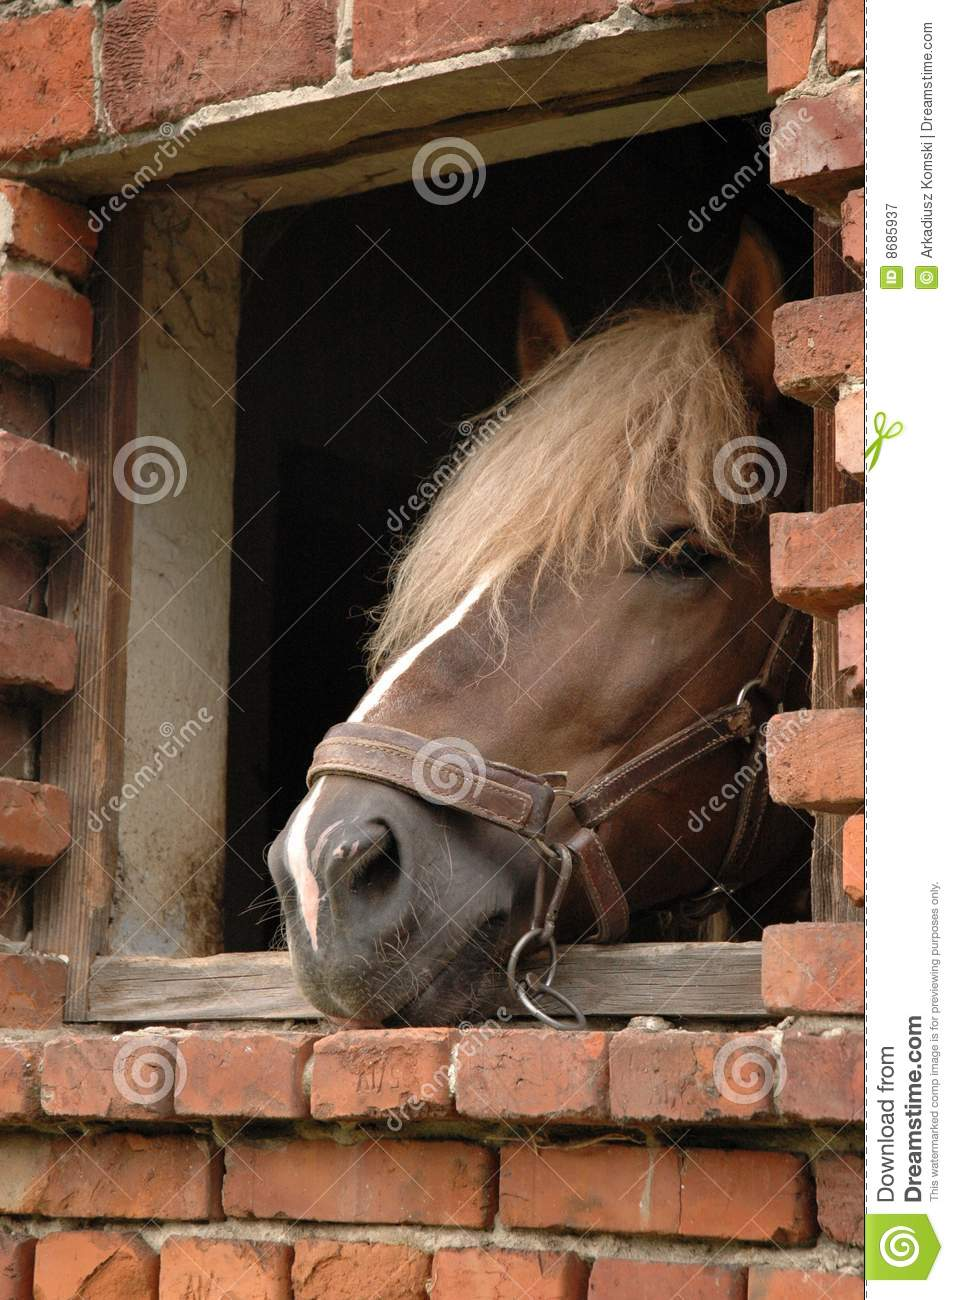 Horse in window royalty free stock photography image for Window horses